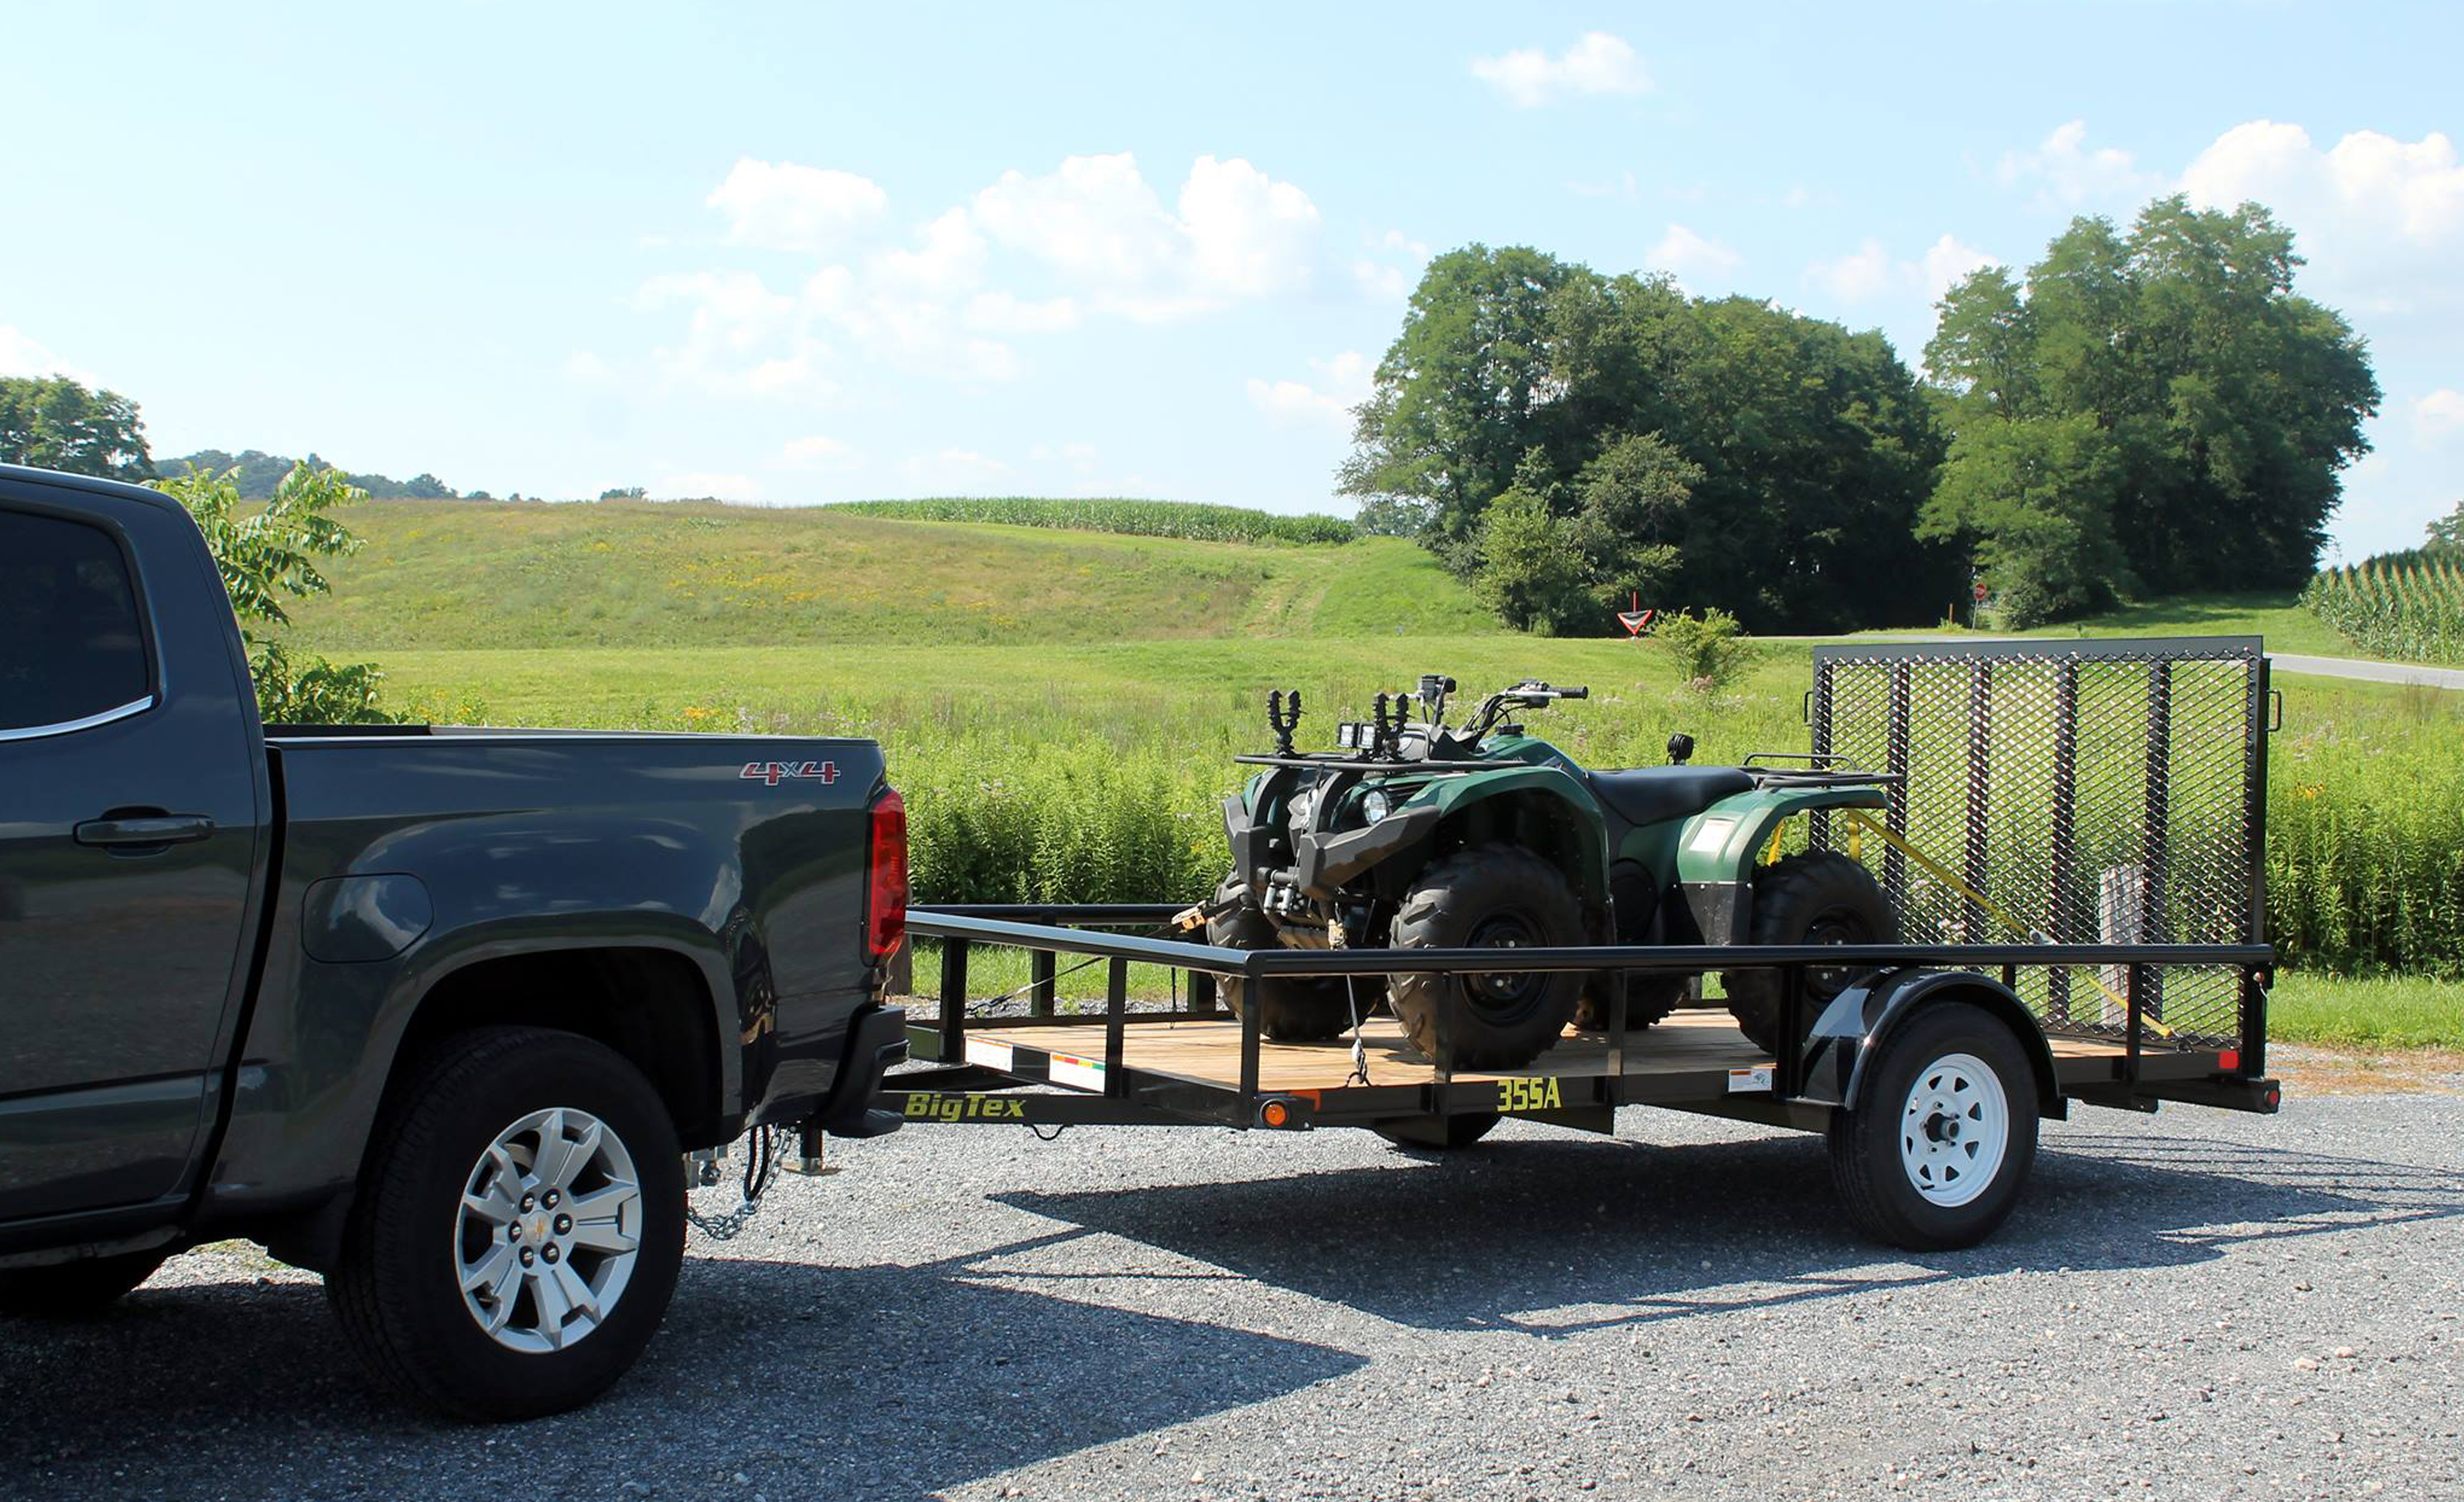 Home | Creightons Trailer Sales is the best utility trailer